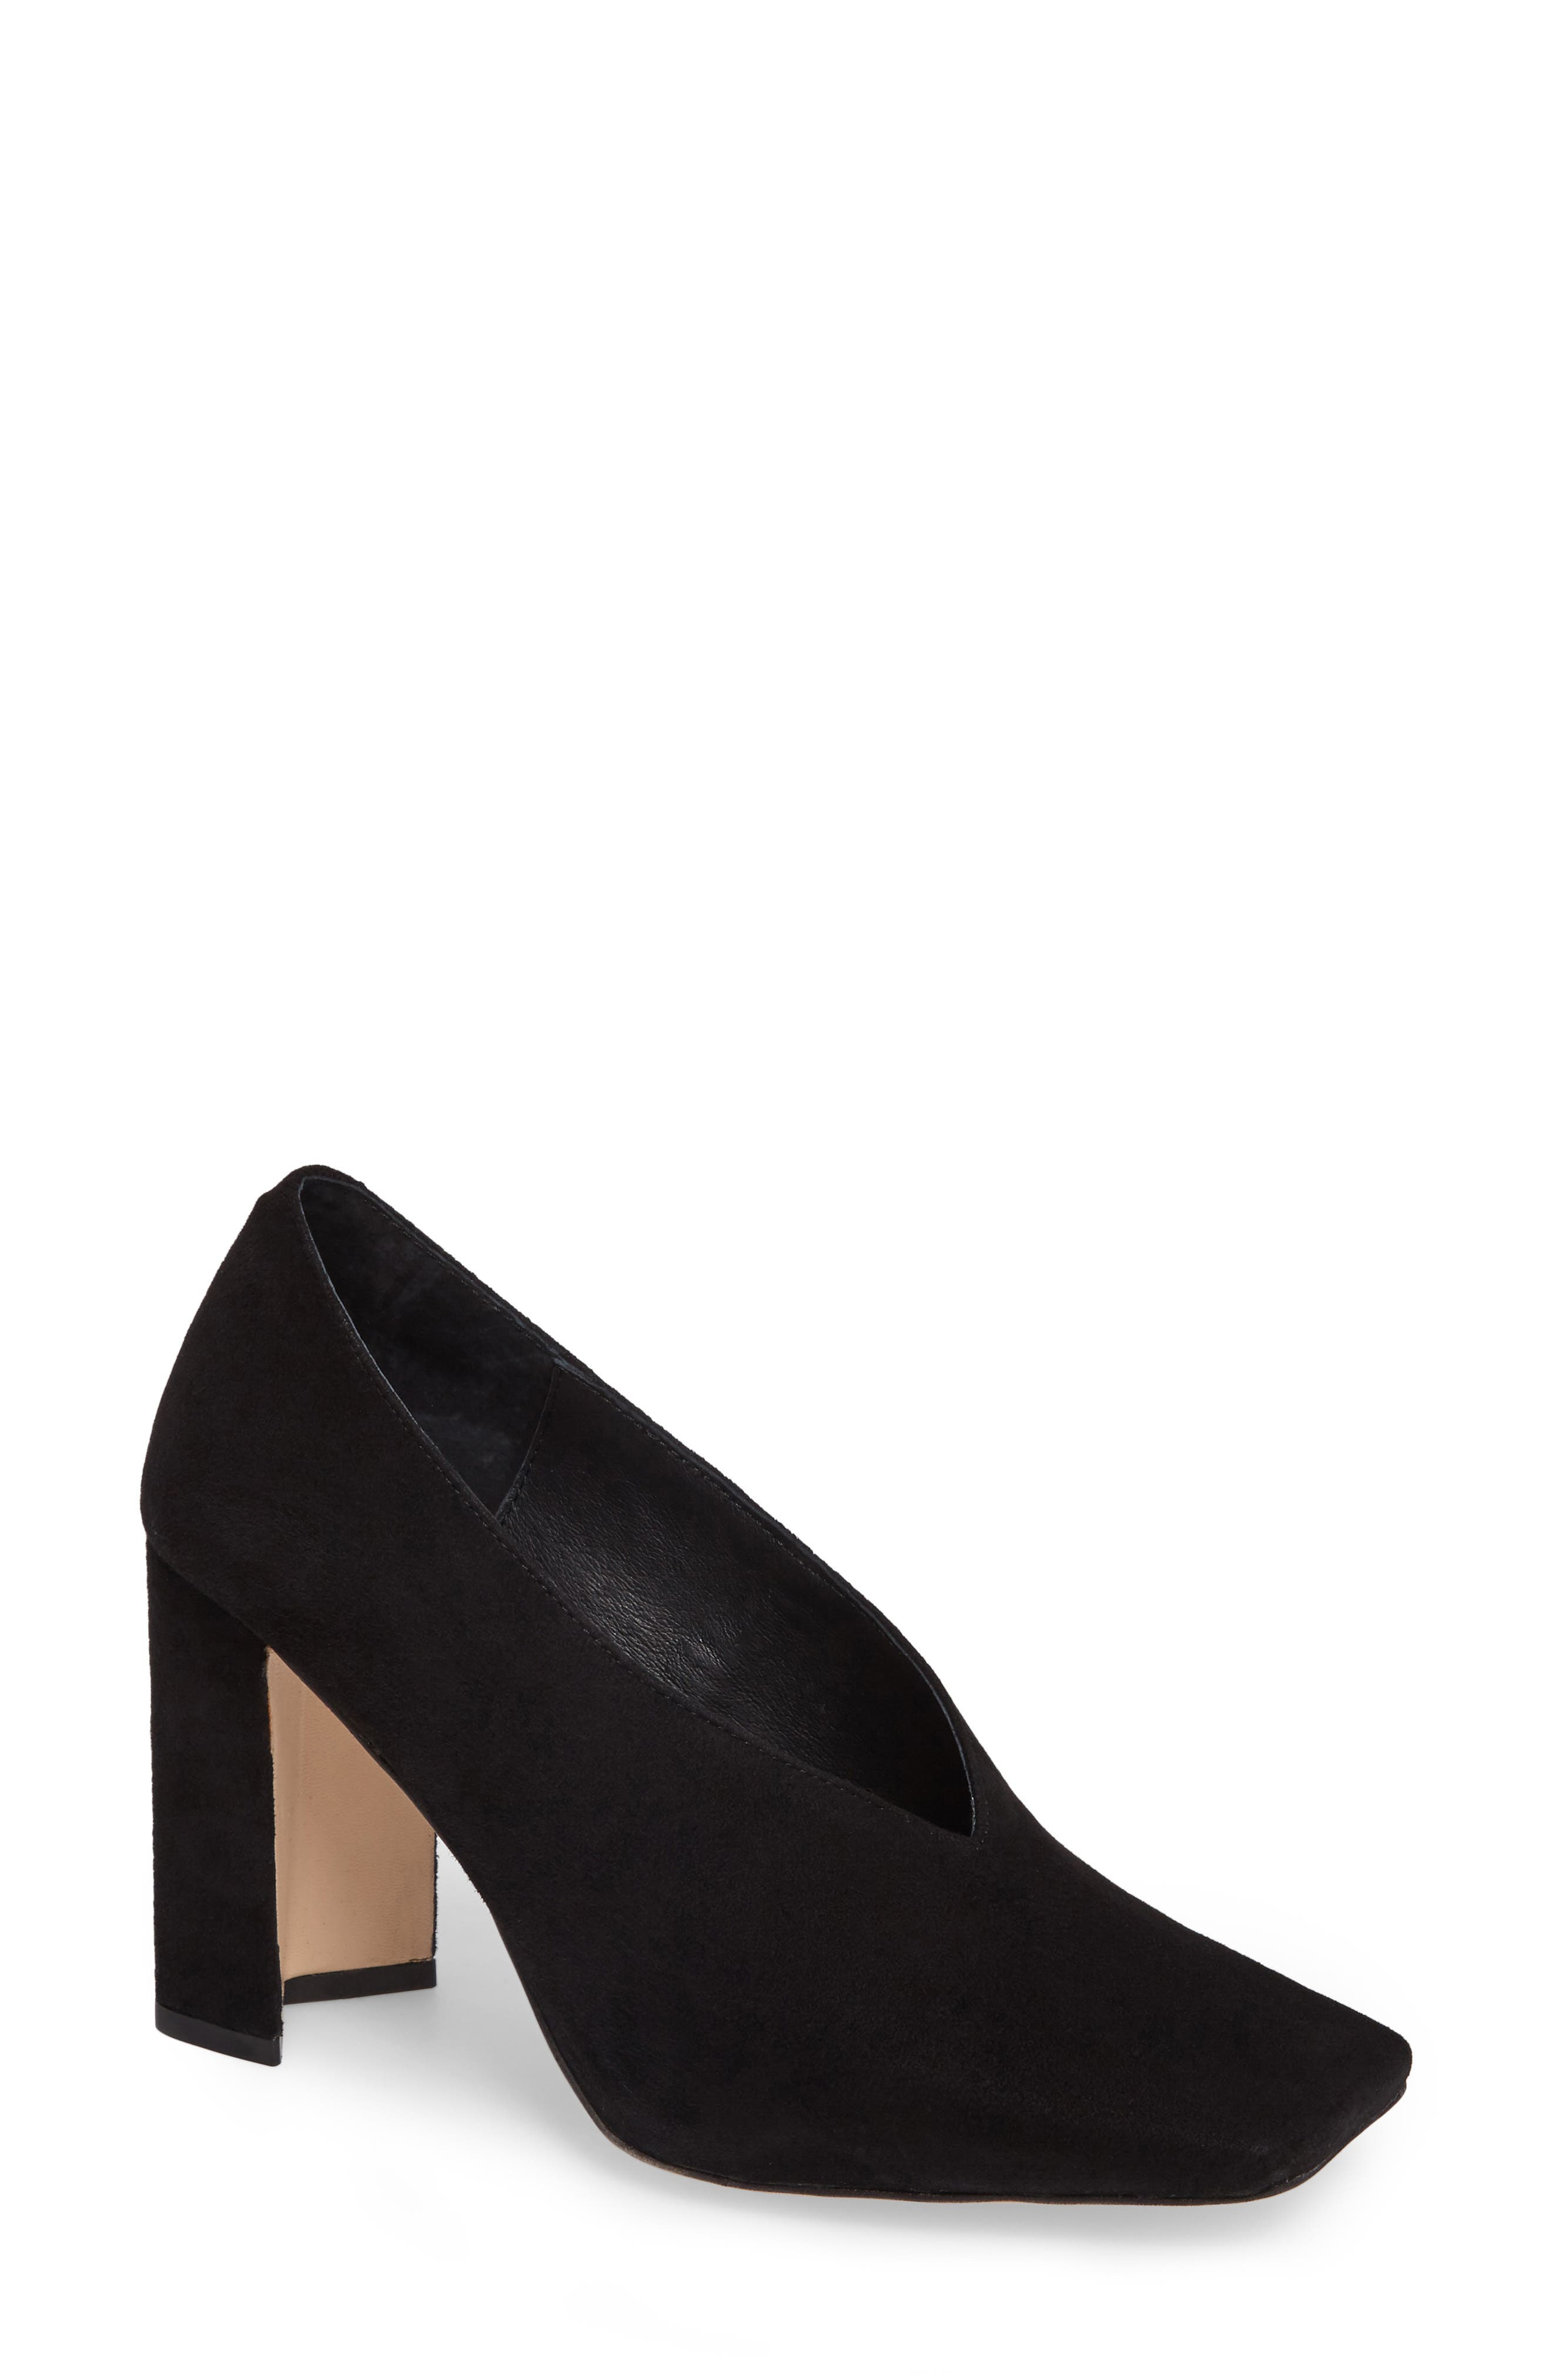 Alternate Image 1 Selected - Jeffrey Campbell Cyrille Pump (Women)